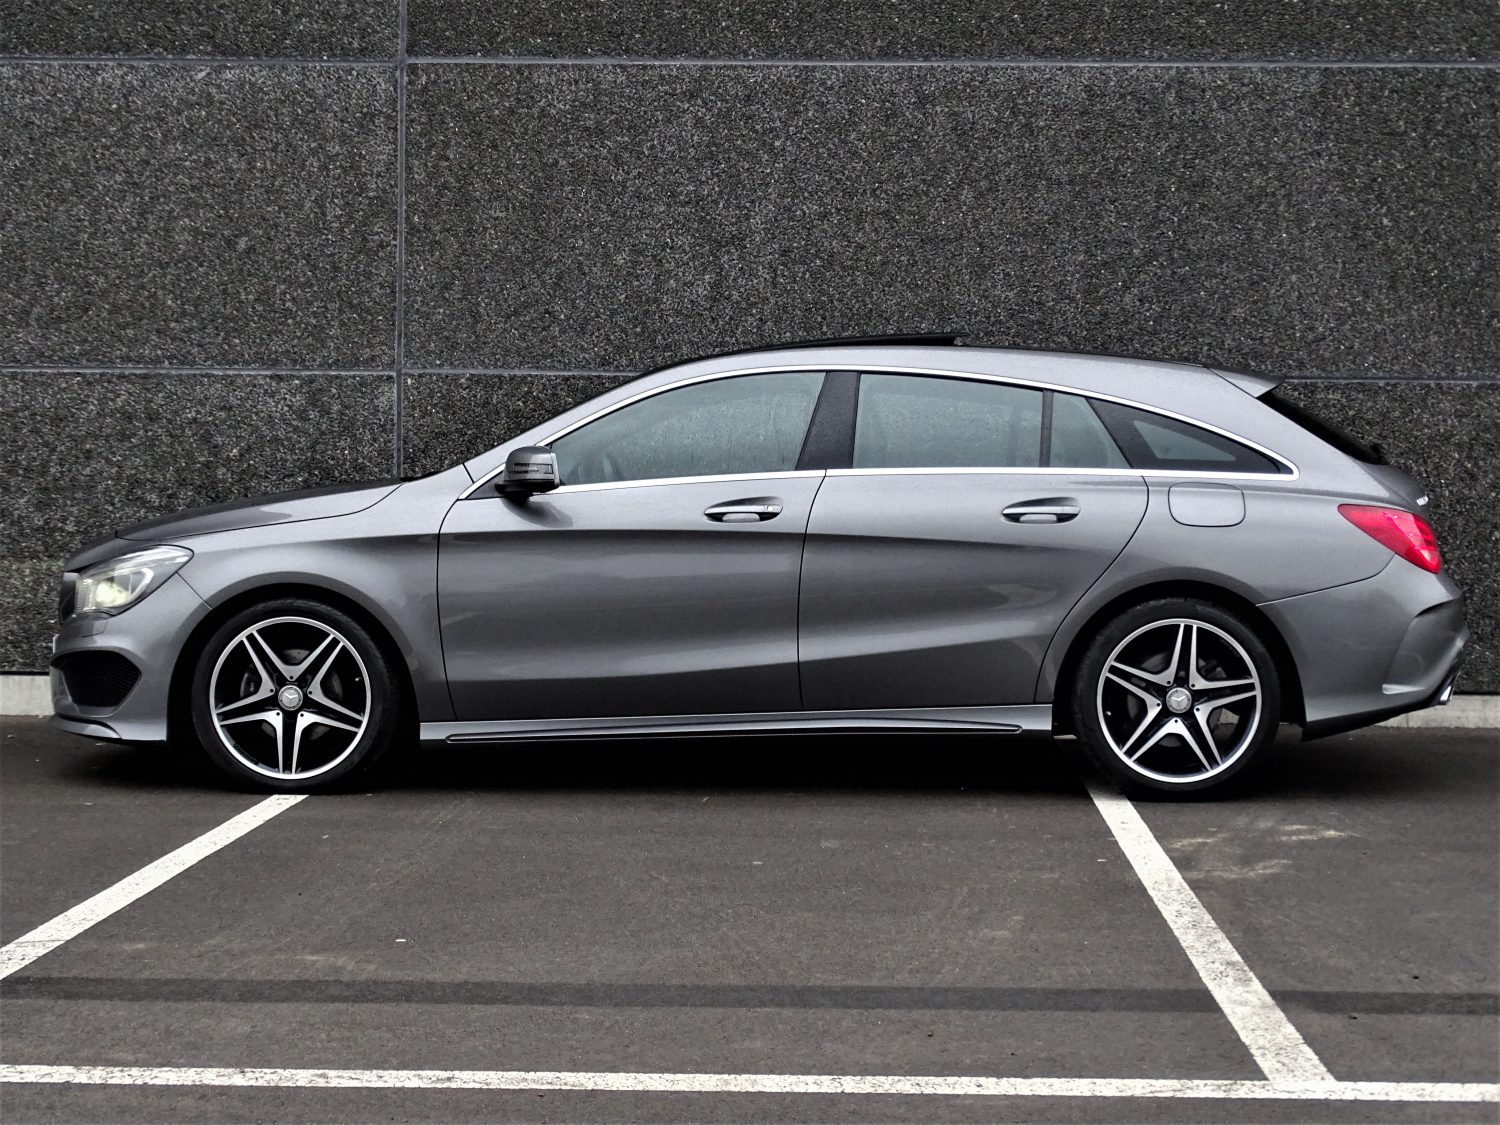 Mercedes Benz Cla 200 Shooting Brake Amg Vendue J N